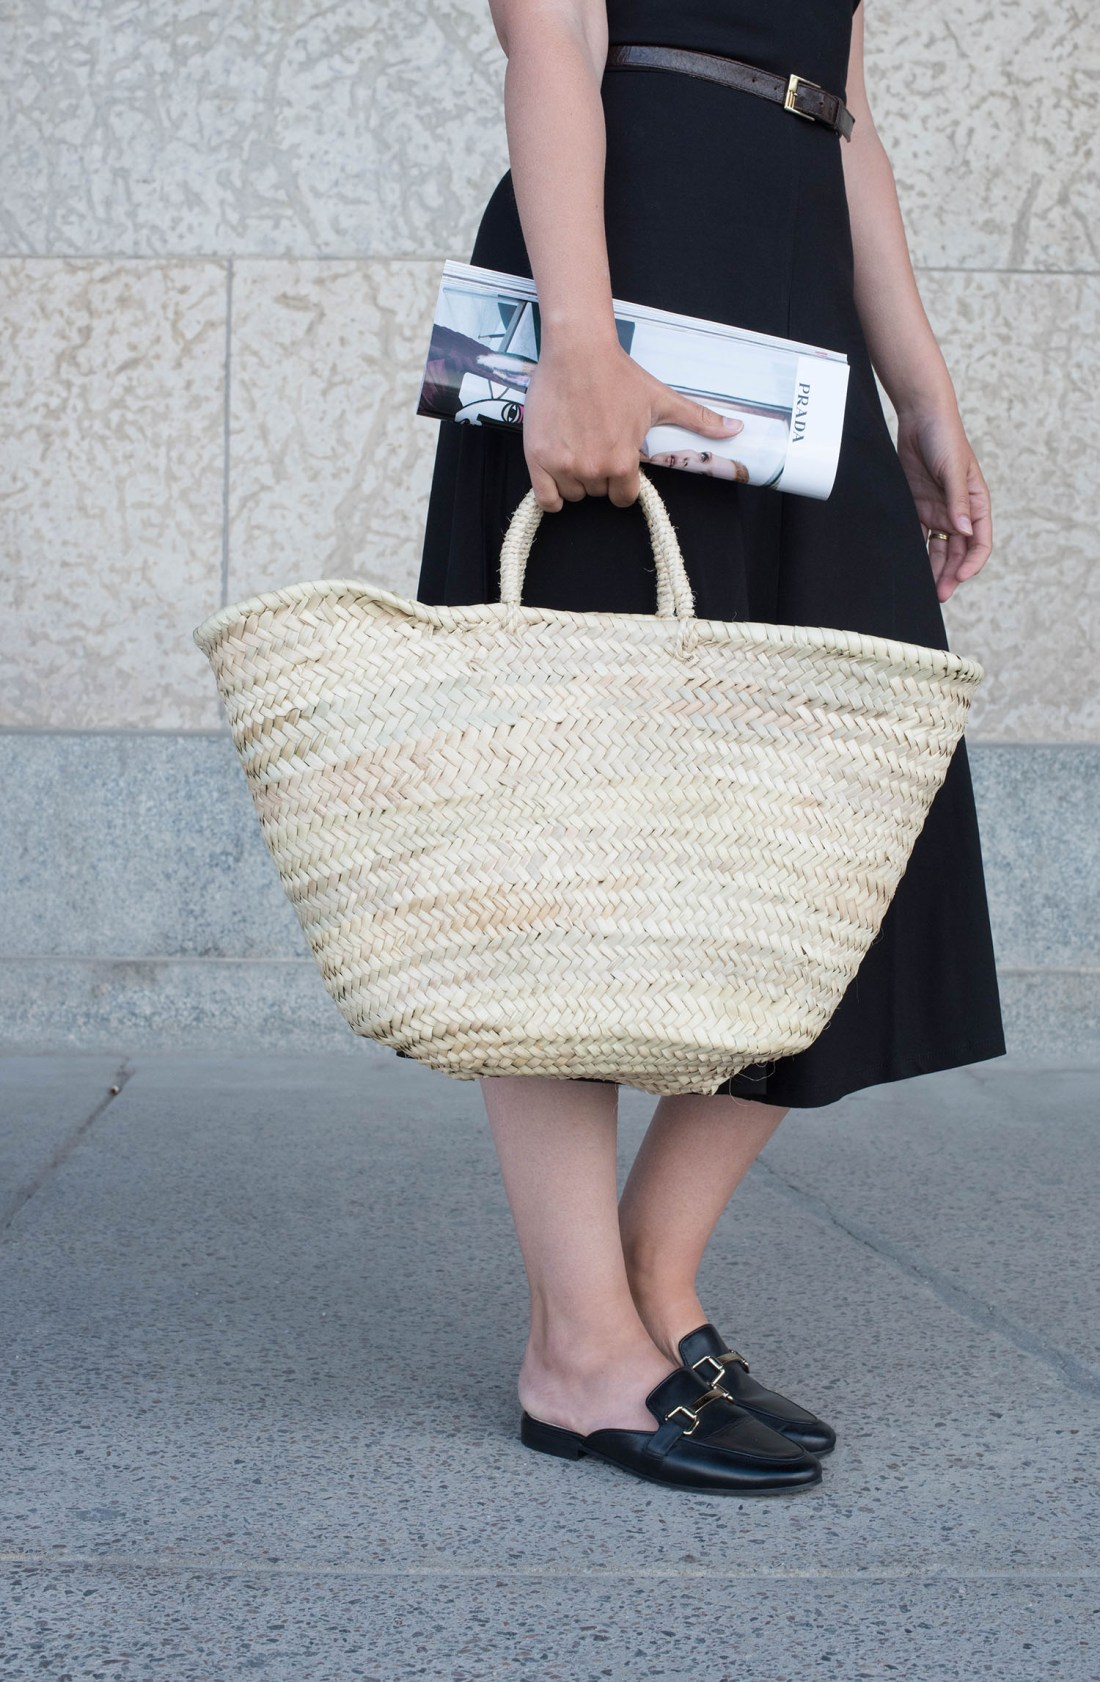 Outfit details on fashion blogger Cee Fardoe of Coco & Vera, including a Sezane straw tote and Jonak mules